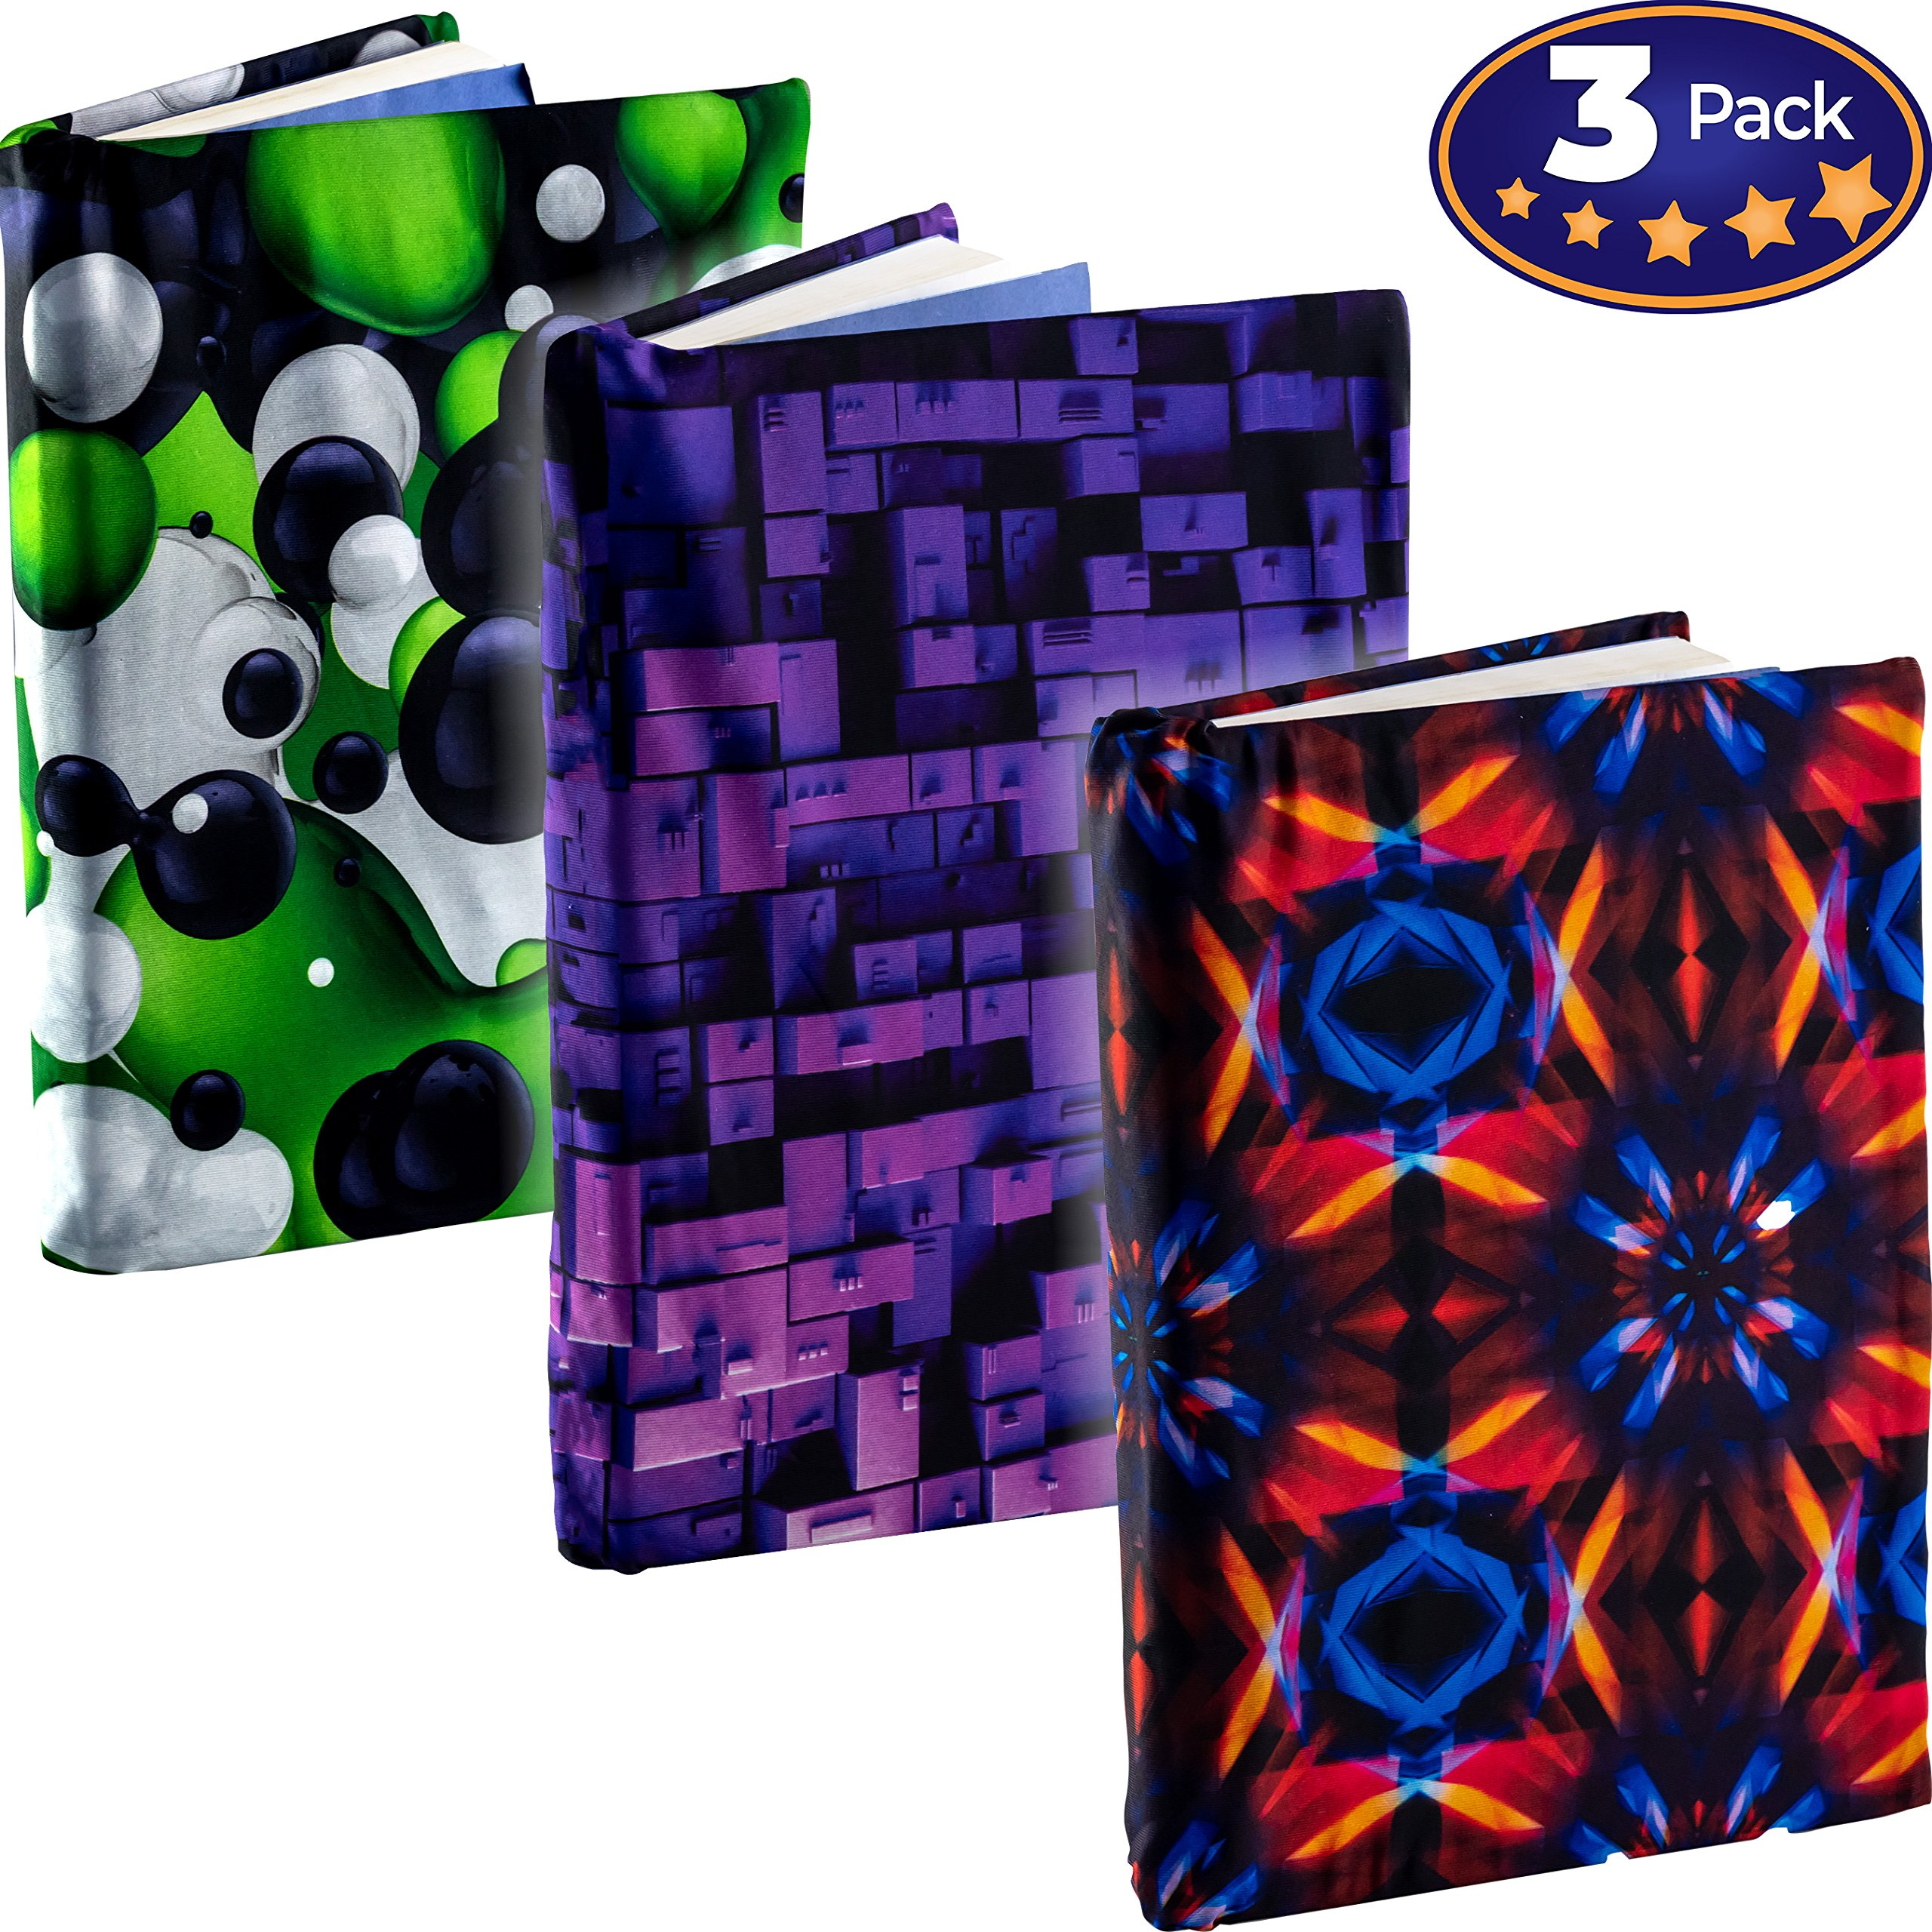 Jumbo, Stretchable Book Cover Geometric Shape 3 Pack. Fits Most Hardcover Textbooks Up to 9 x 11. Adhesive-Free, Nylon Fabric Protectors Are A Needed School Supply For Students Washable and Reusable by Eucatus (Image #1)